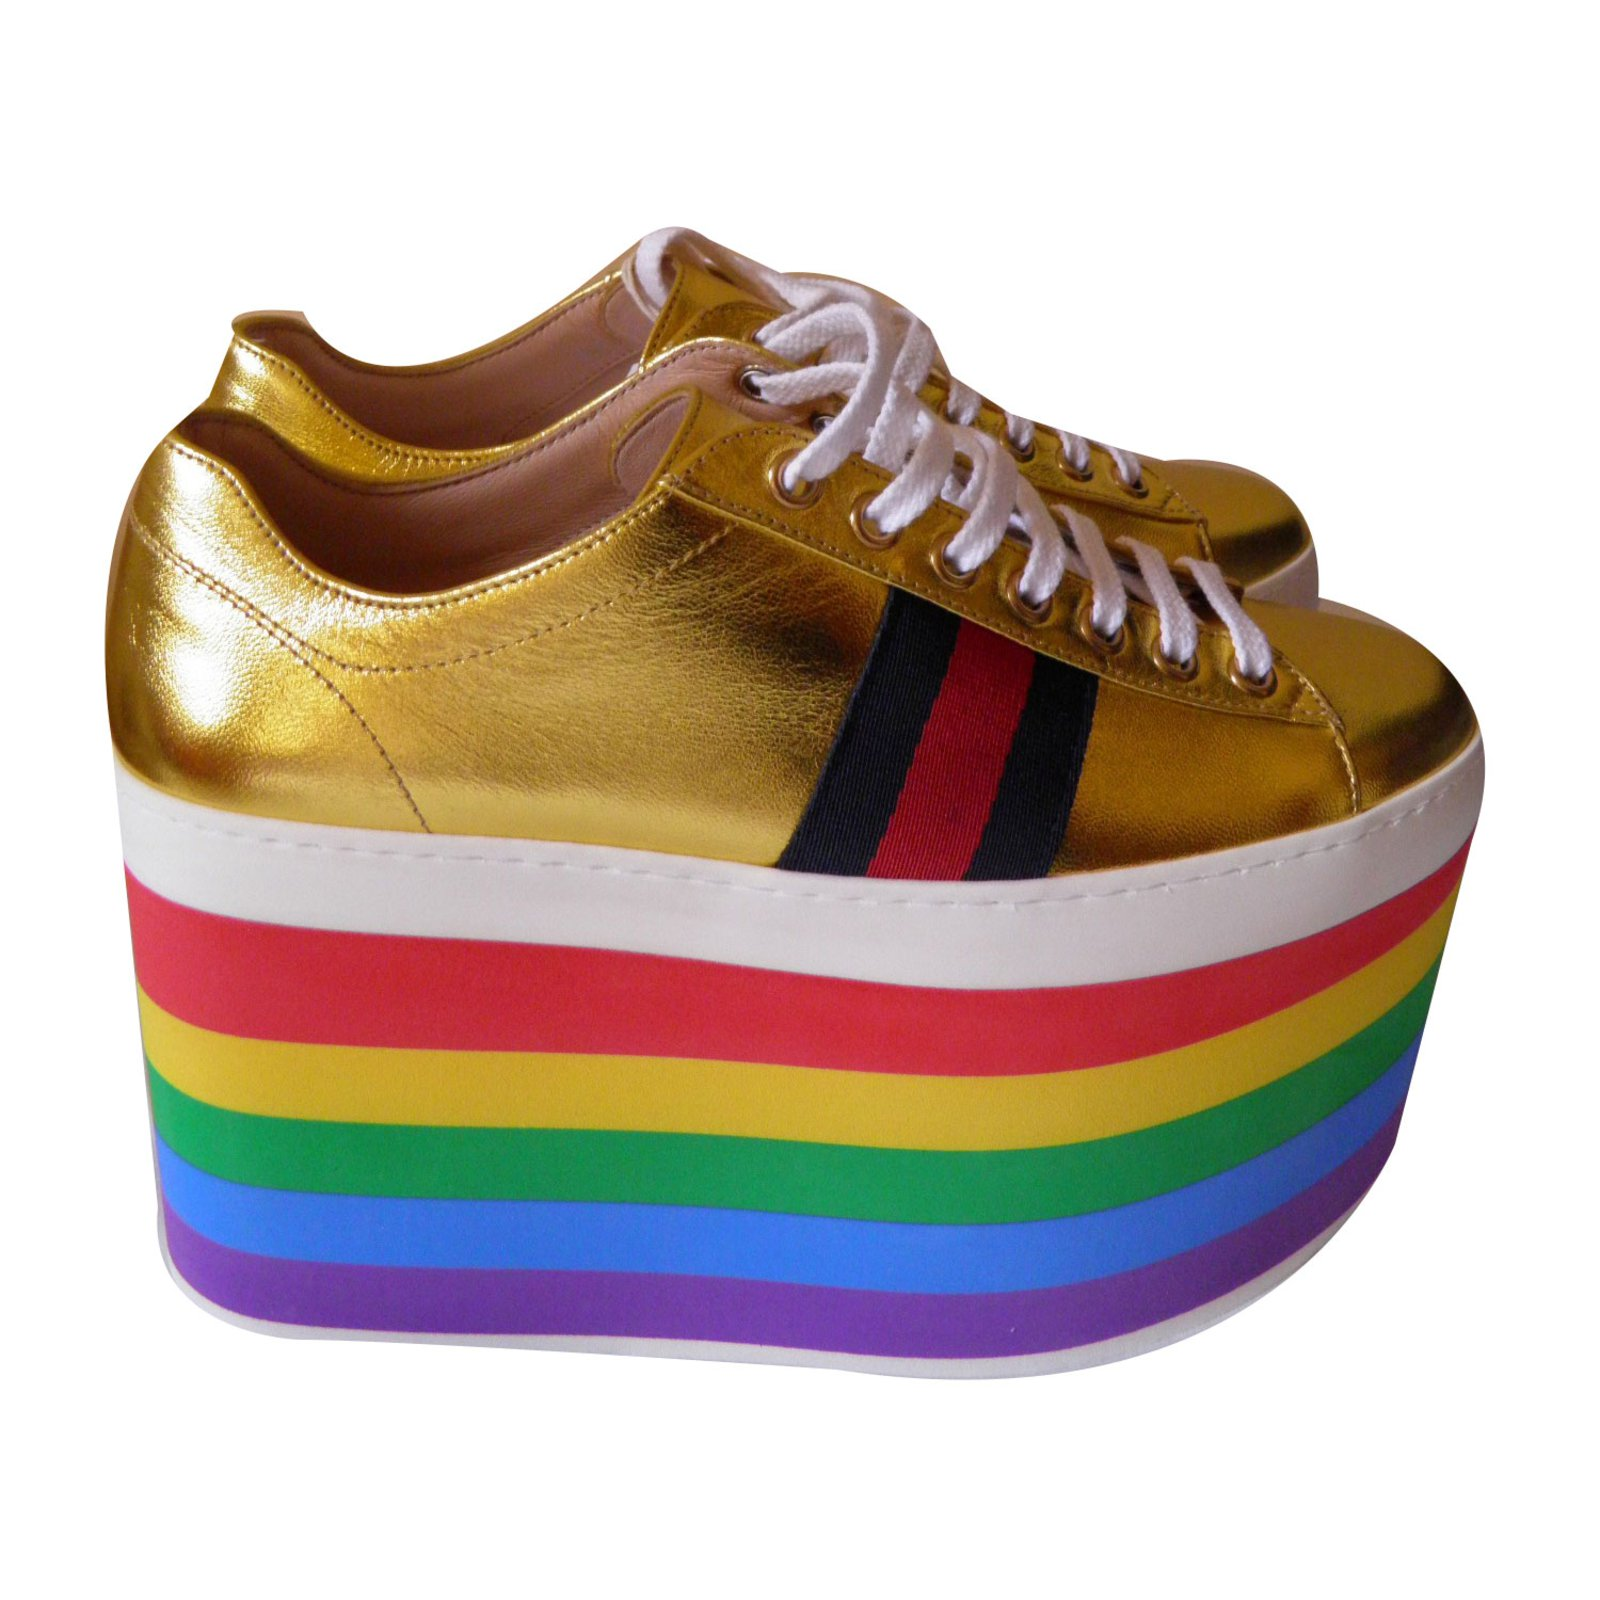 356e98168 Gucci rainbow platform sneakers Sneakers Leather Golden ref.69192 ...